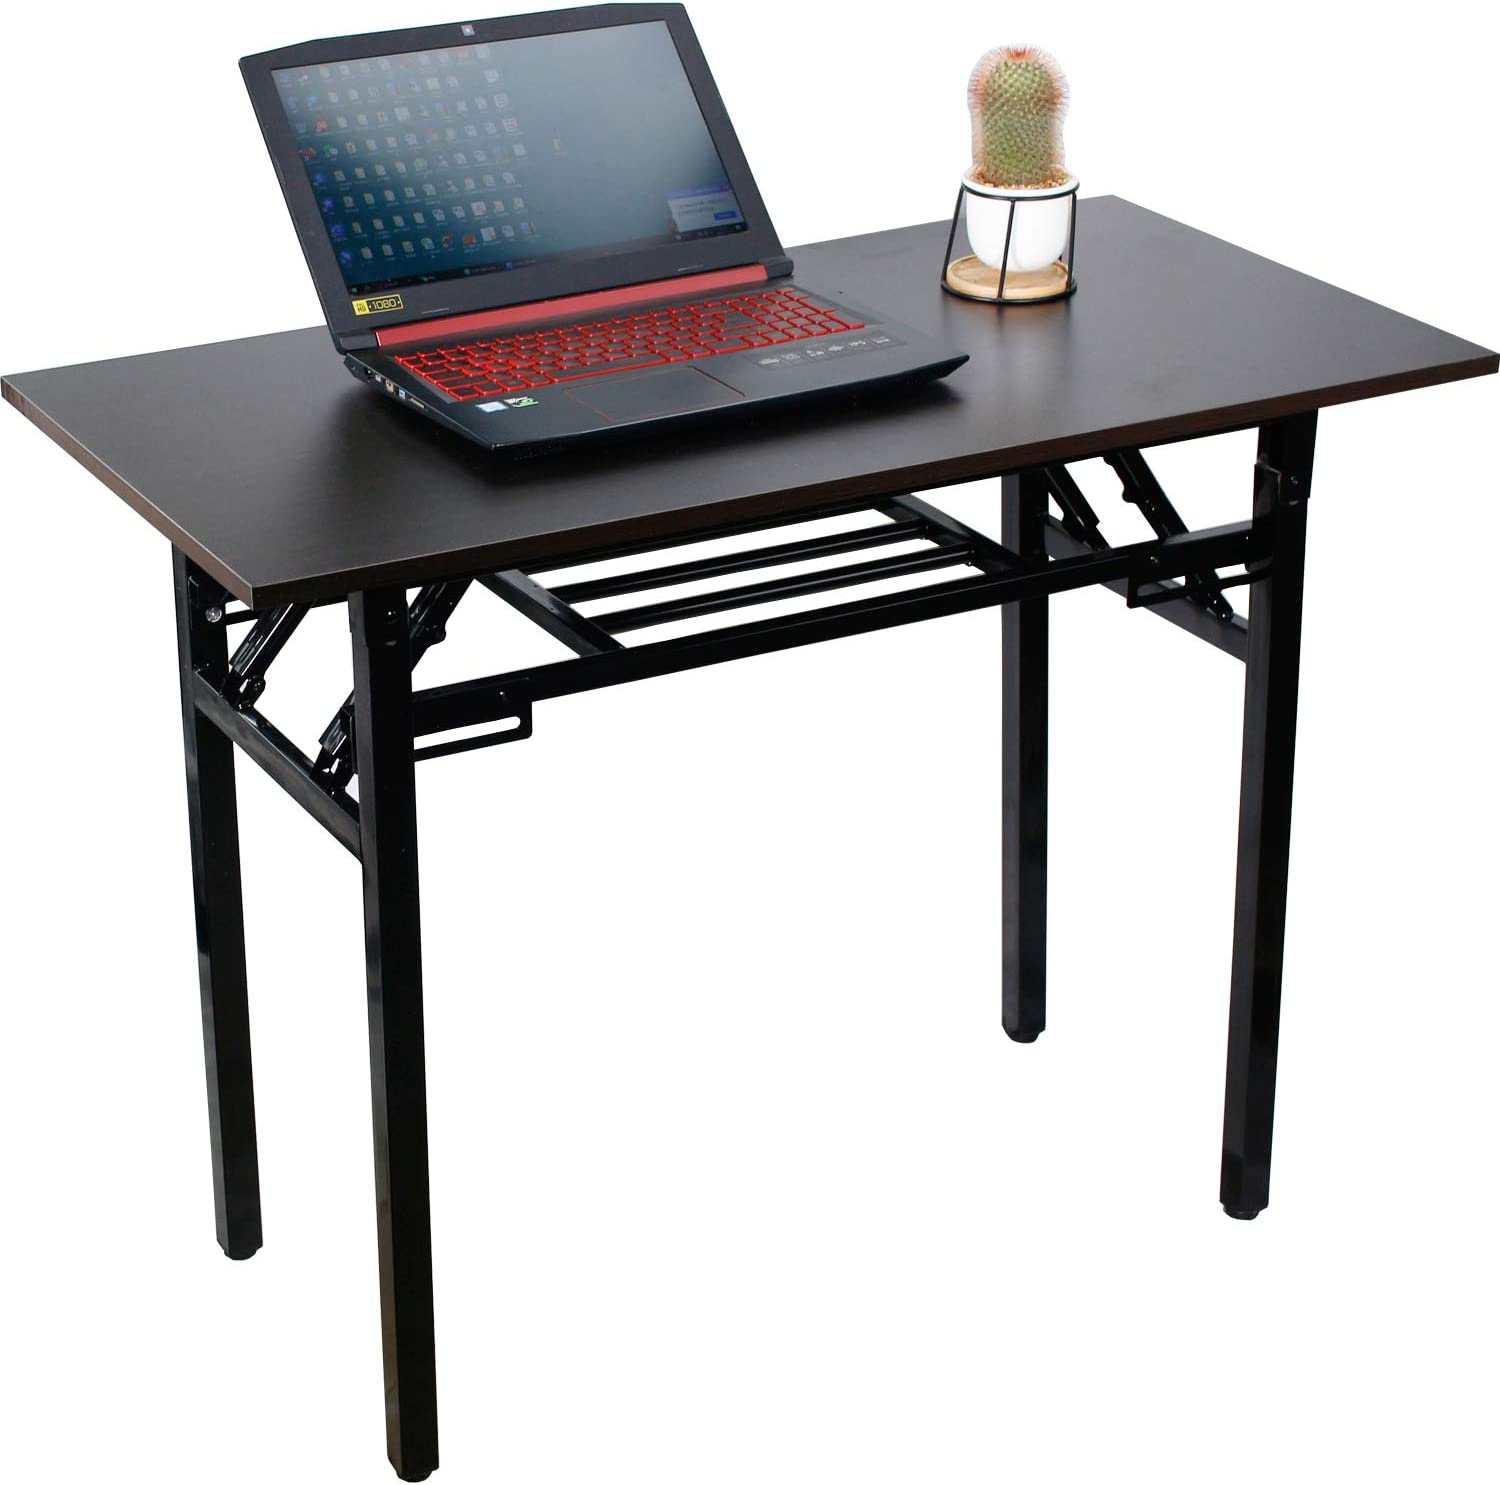 Folding Writing Computer Table Desk,No Assembly Required,Sturdy and Heavy Duty Modern Simple Work Study Desk Laptop Table for Home Office and Small Spaces,Black Metal Frame,Black Color,39.3x19.6x29.5""